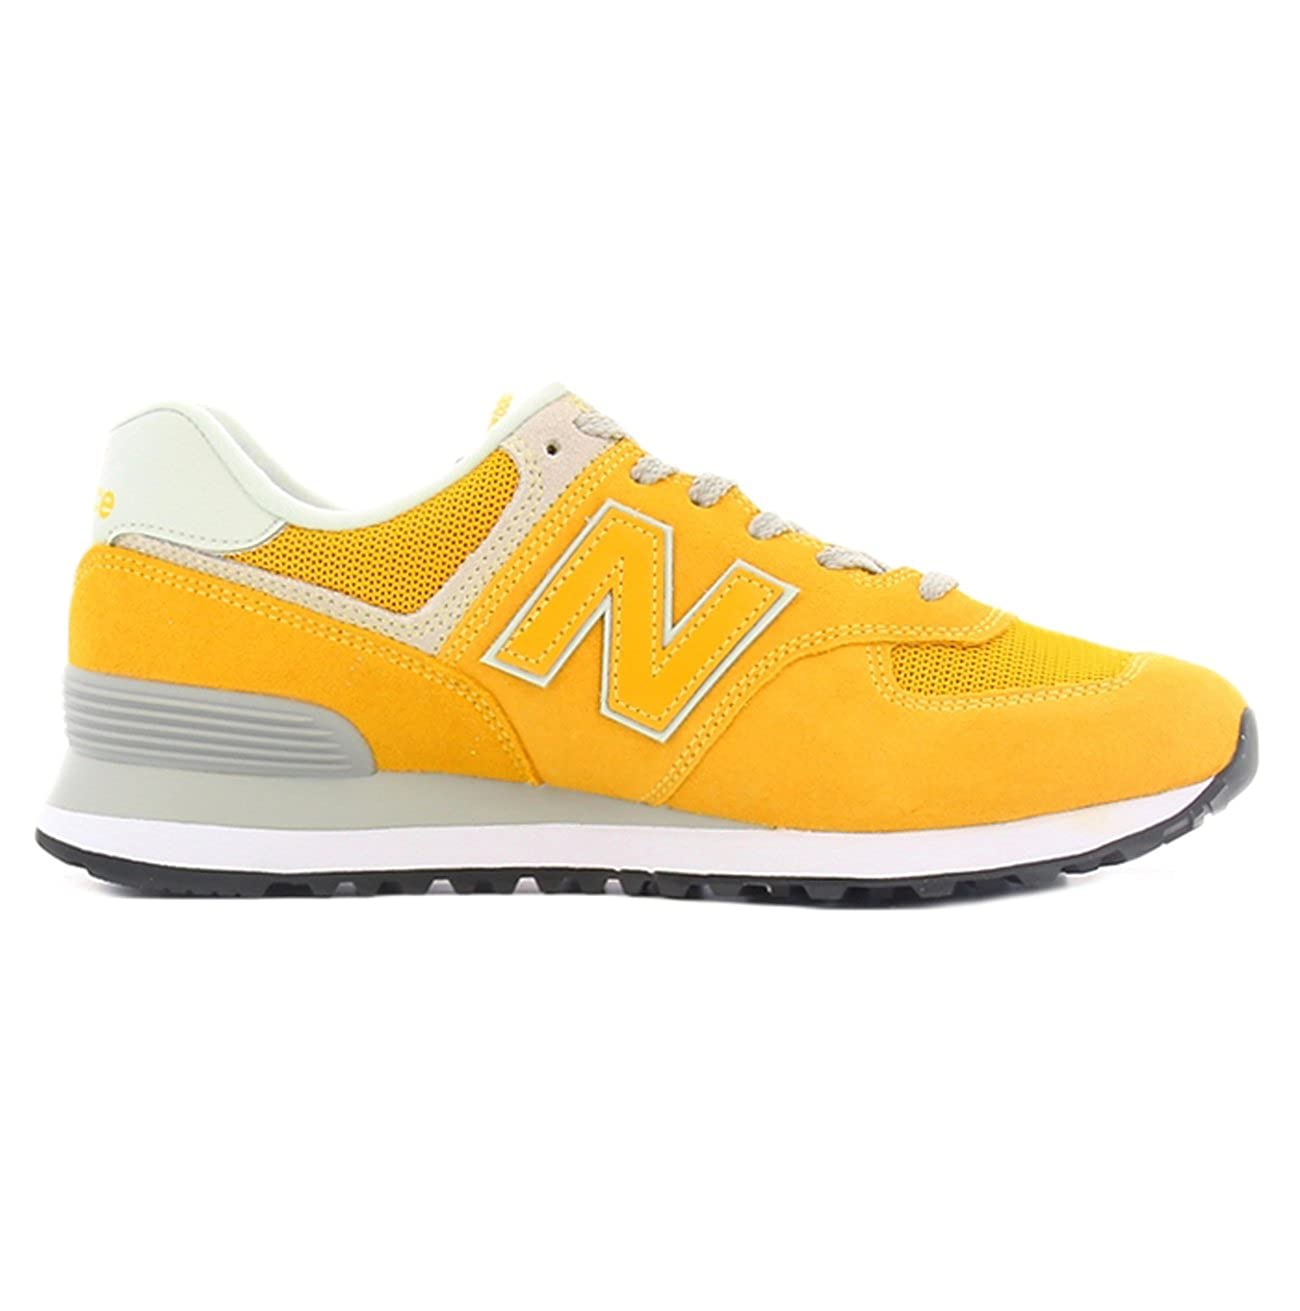 New Balance ML 574EYW Giallo Scarpa 574 EYW Uomo: Amazon.it